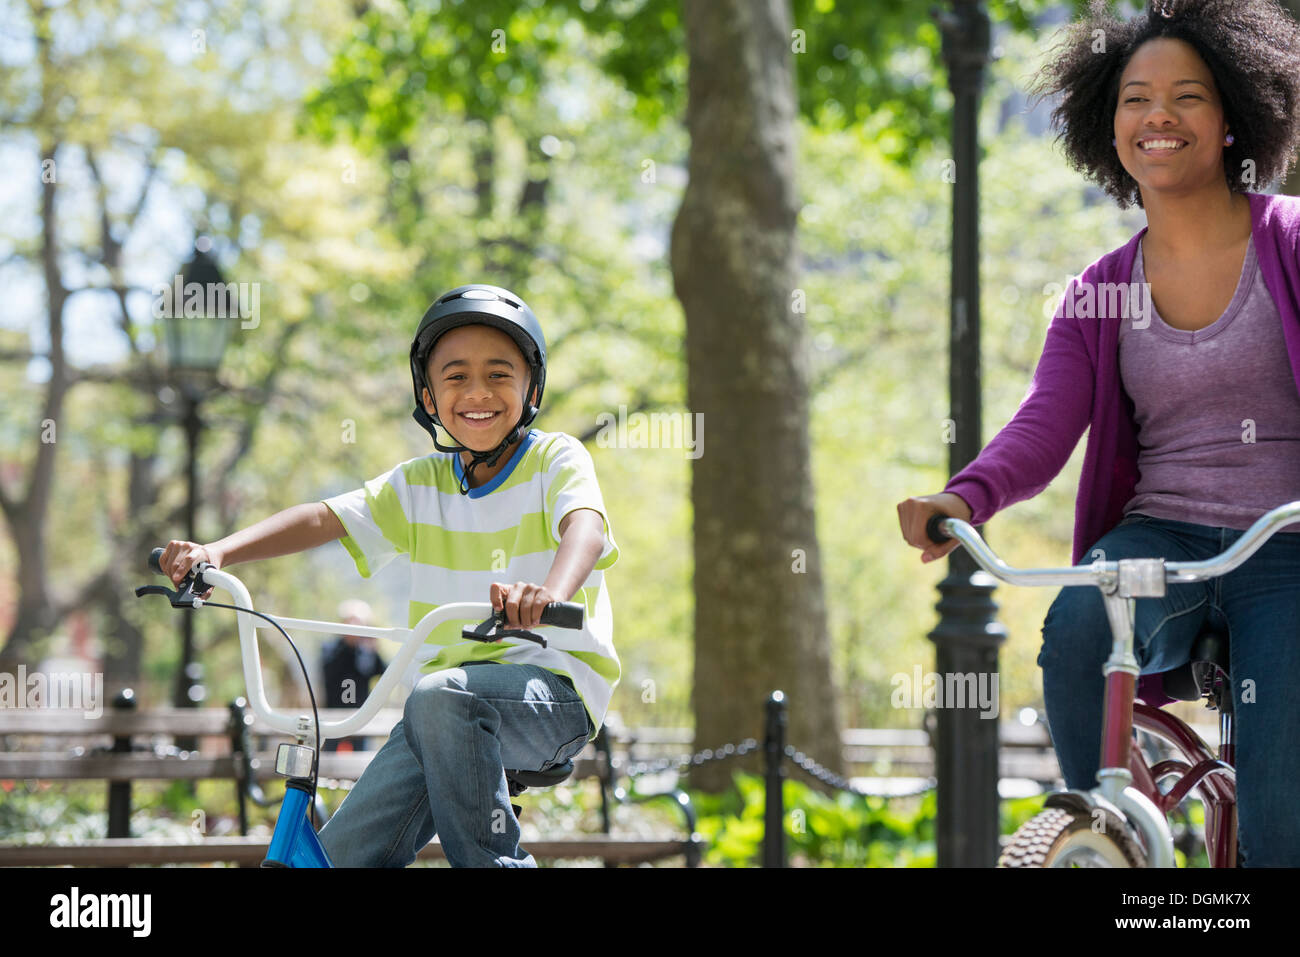 A family in the park on a sunny day. A mother and son. - Stock Image